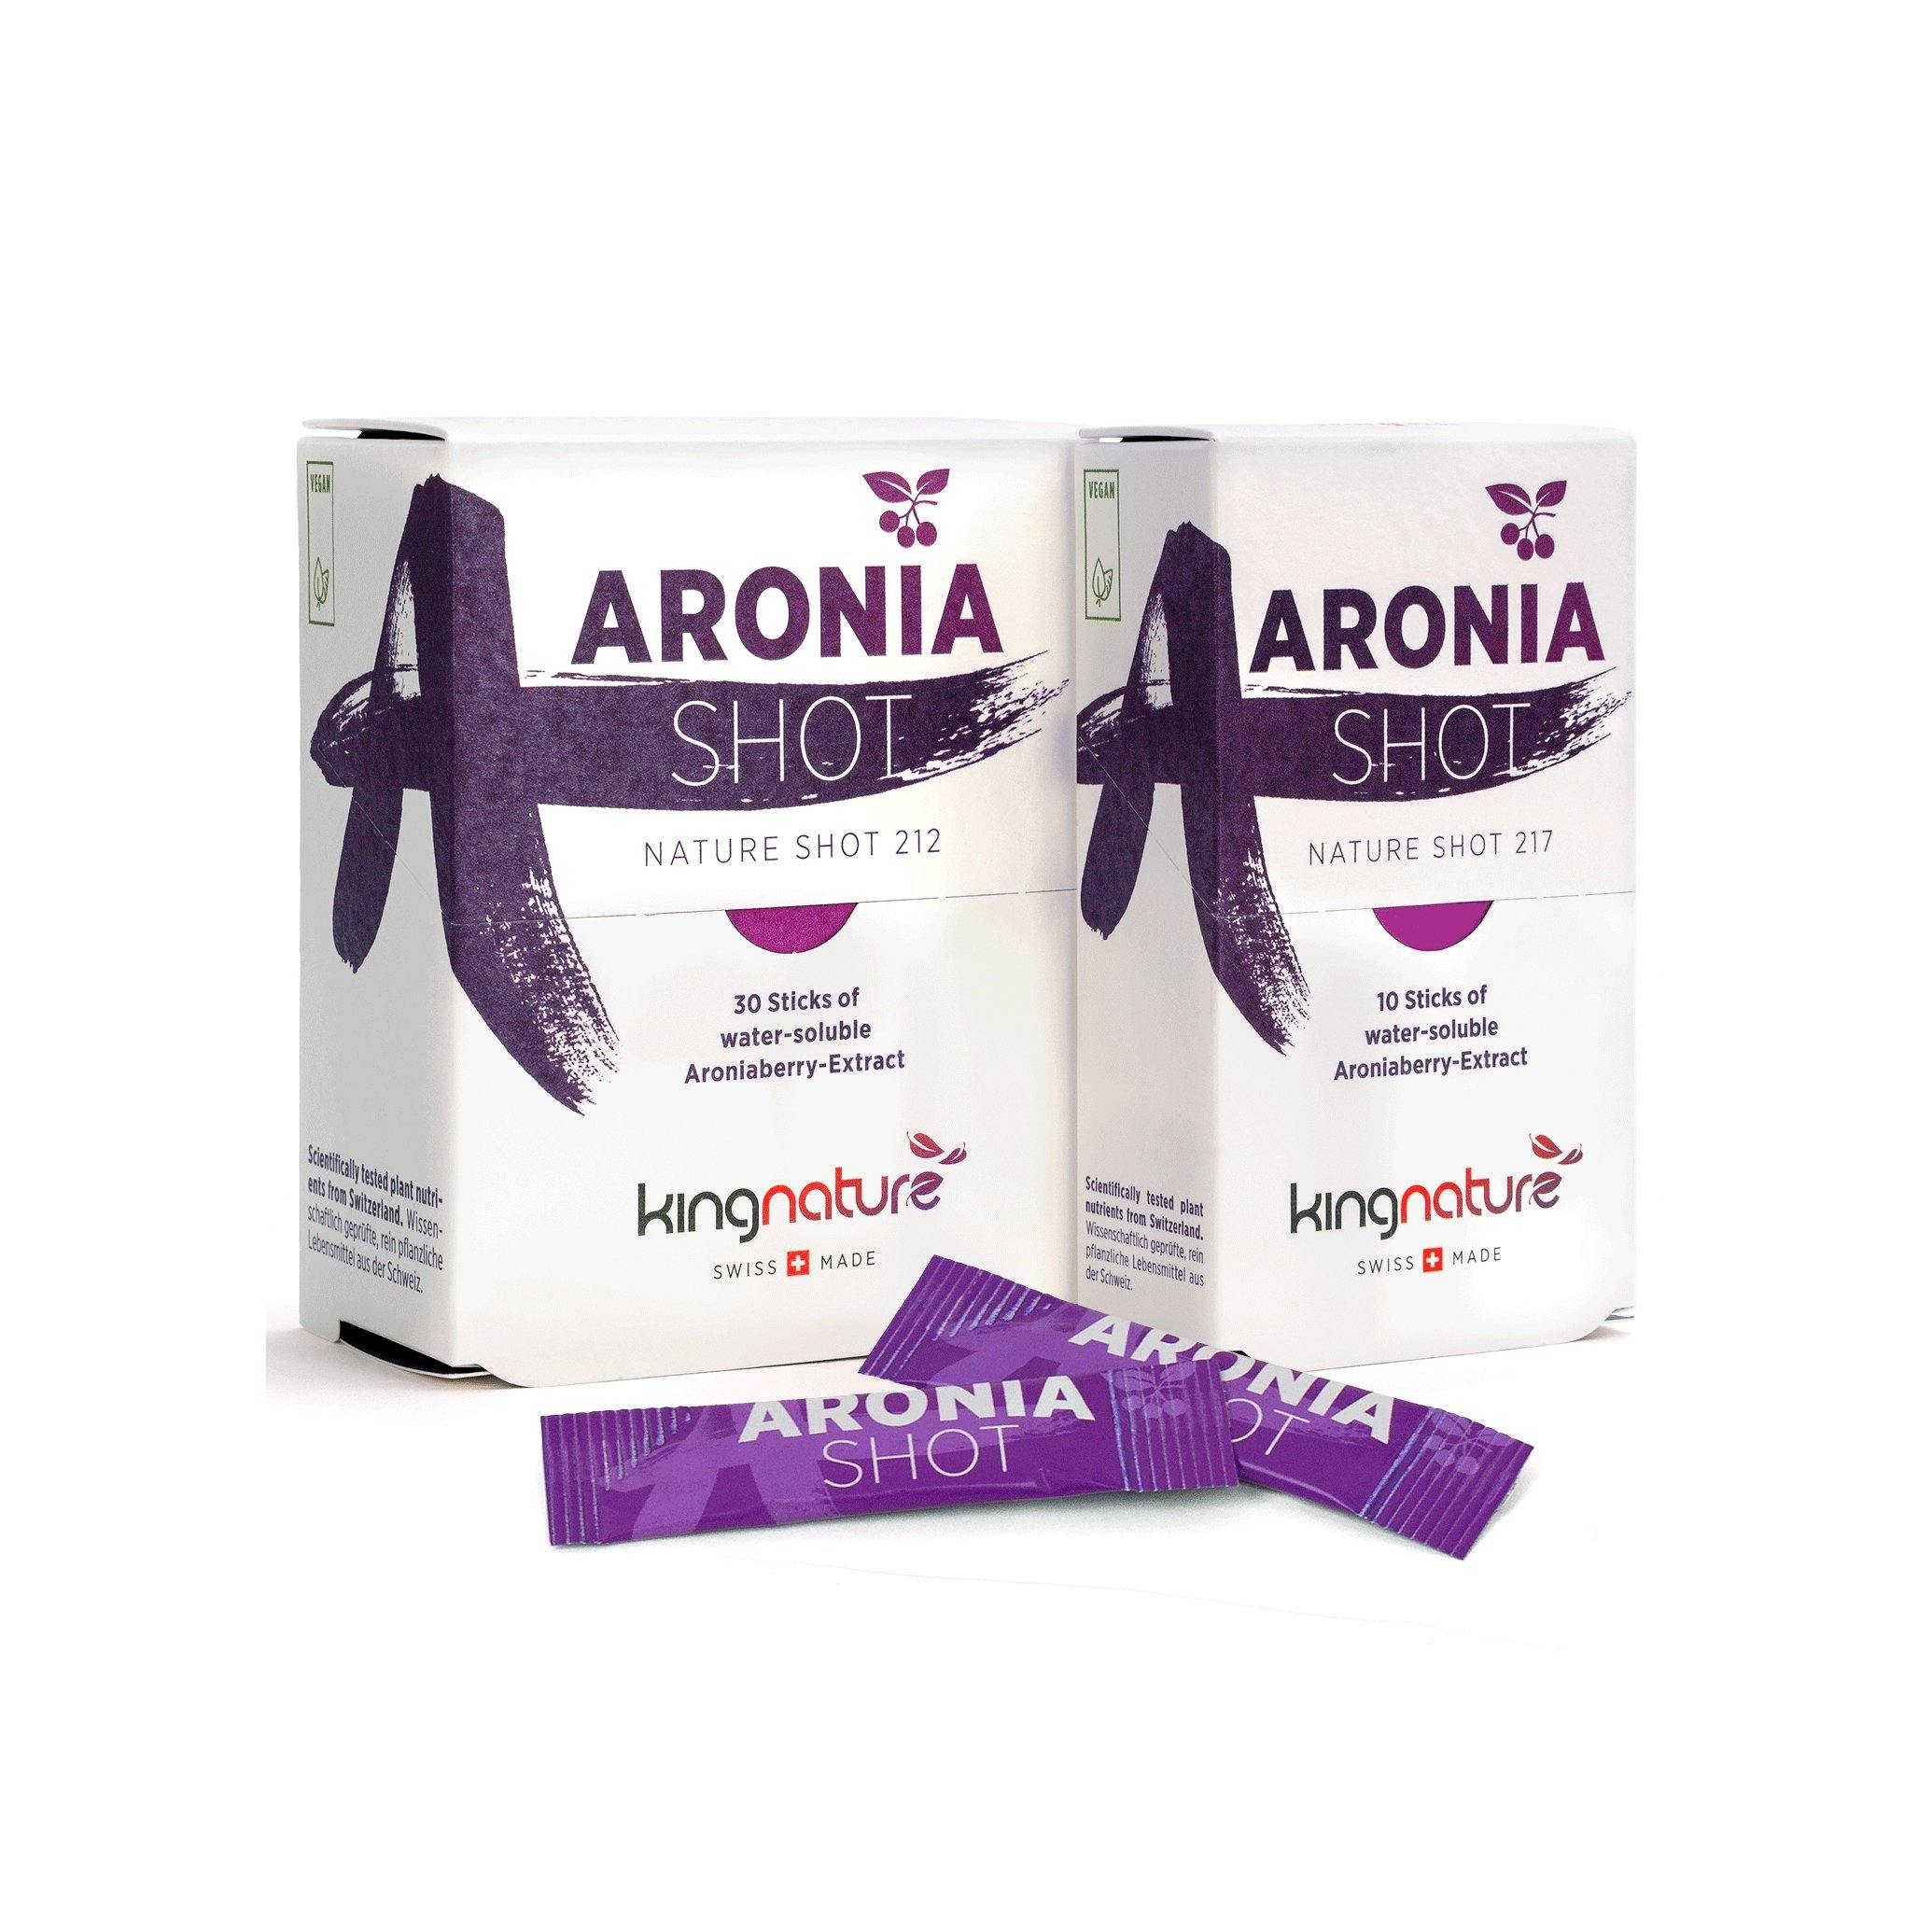 Kingnature aronia shot 30 sticks - beautylion.shop